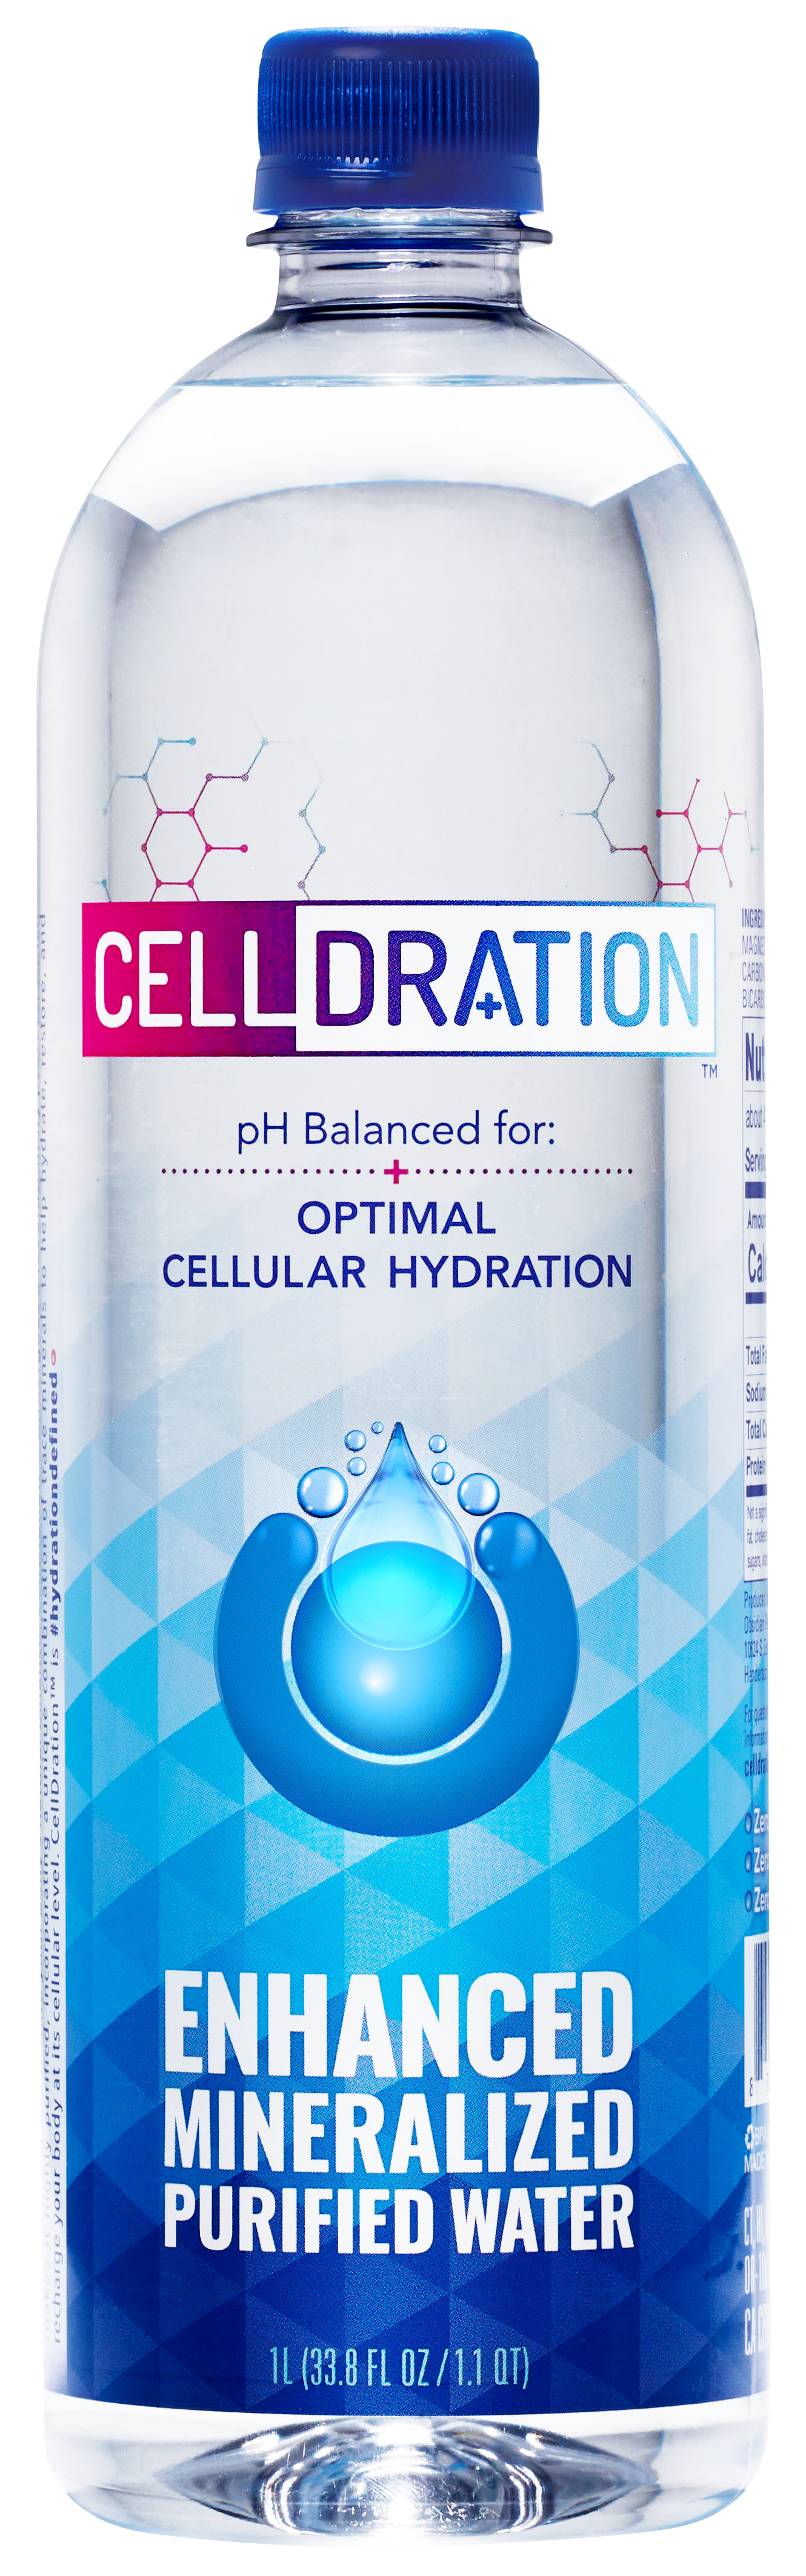 CellDration offers a unique enhanced mineralized water hydration system that helps to restore your body's natural balance. Balance is the body's way of creating well being.